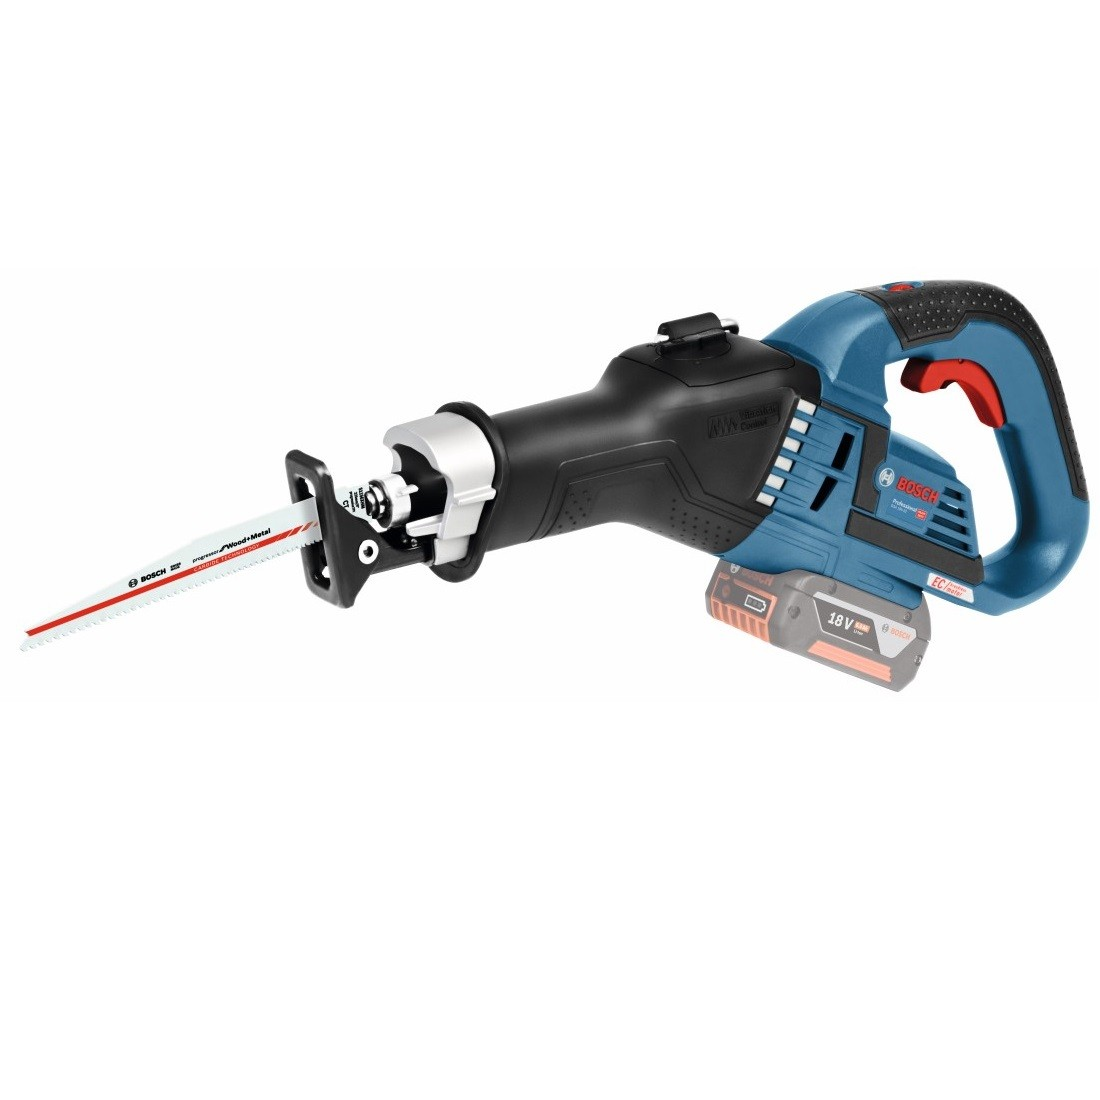 Bosch gsa 18 v 32 18v brushless reciprocating saw body only 2x saw bosch gsa 18 v 32 18v brushless reciprocating saw body only 2x saw blades in carton 06016a8102 powertool world greentooth Gallery